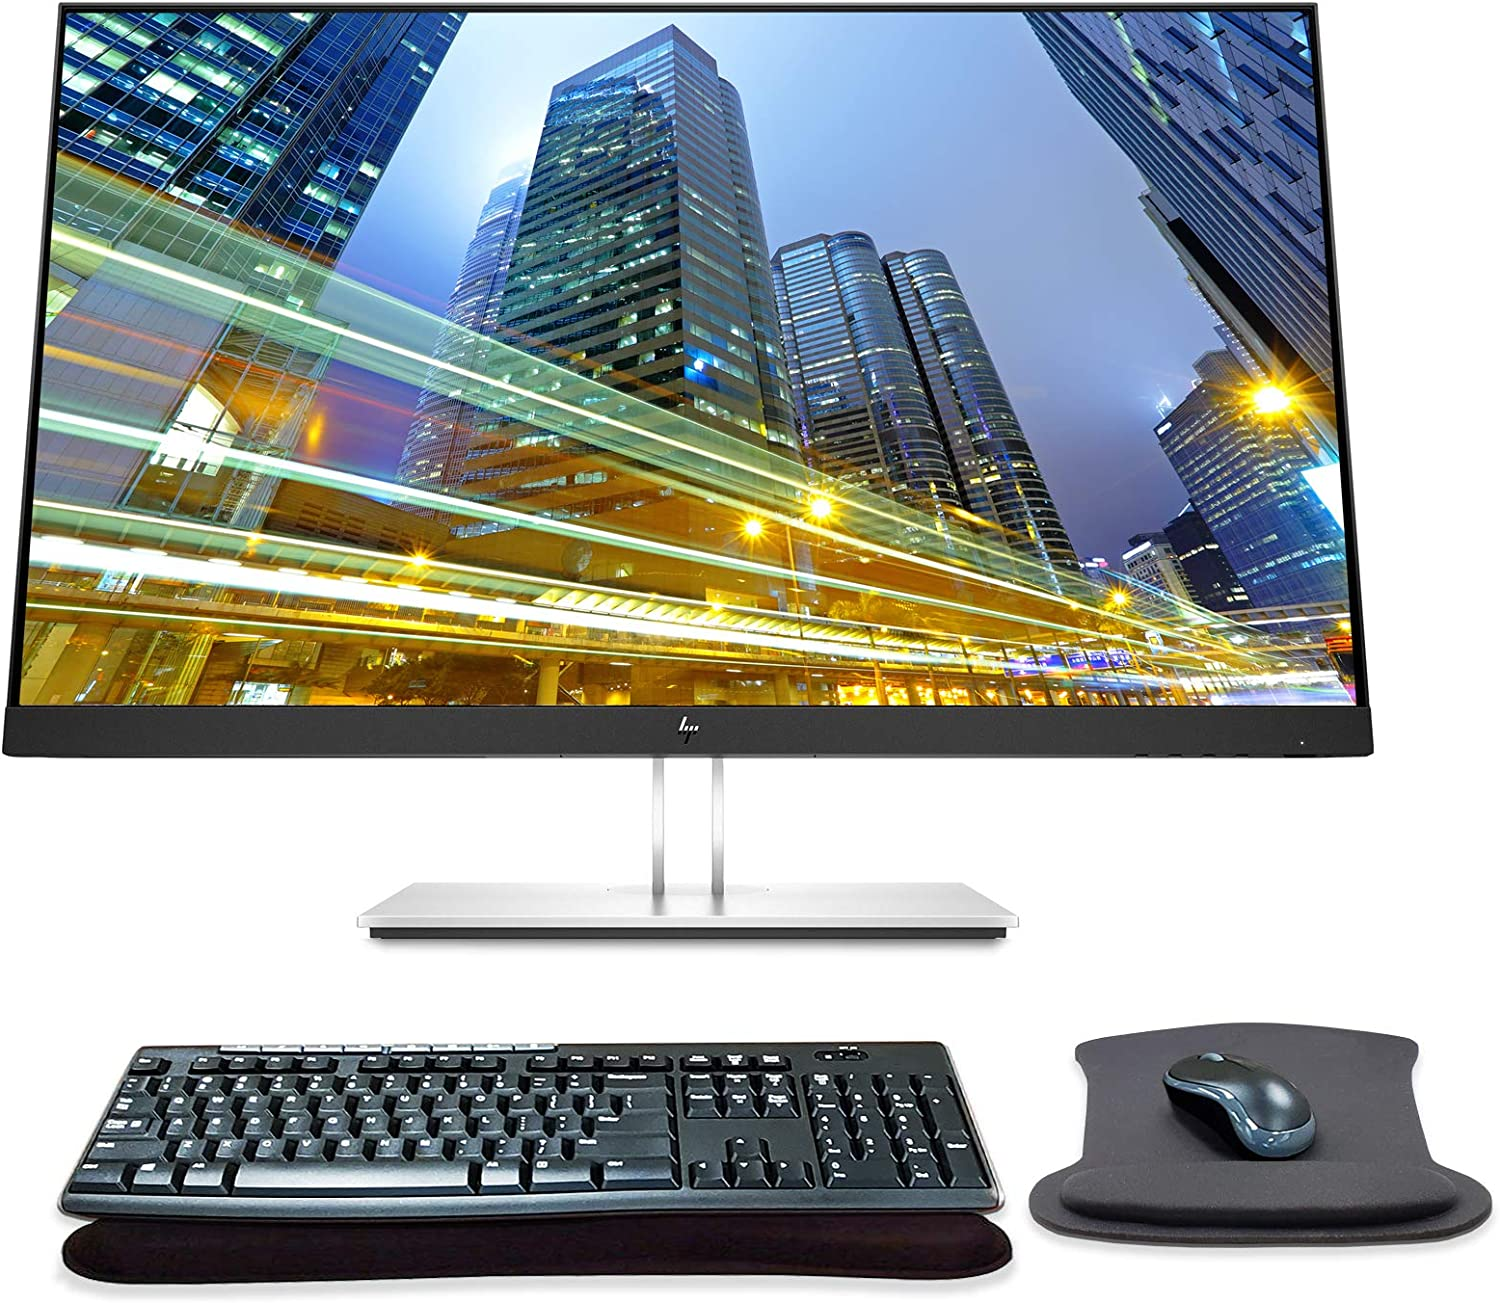 HP EliteDisplay E27q G4 27 Inch QHD QHD IPS LED-Backlit LCD Monitor Bundle with HDMI, Blue Light Filter, MK270 Wireless Keyboard and Mouse Combo, Gel Pads